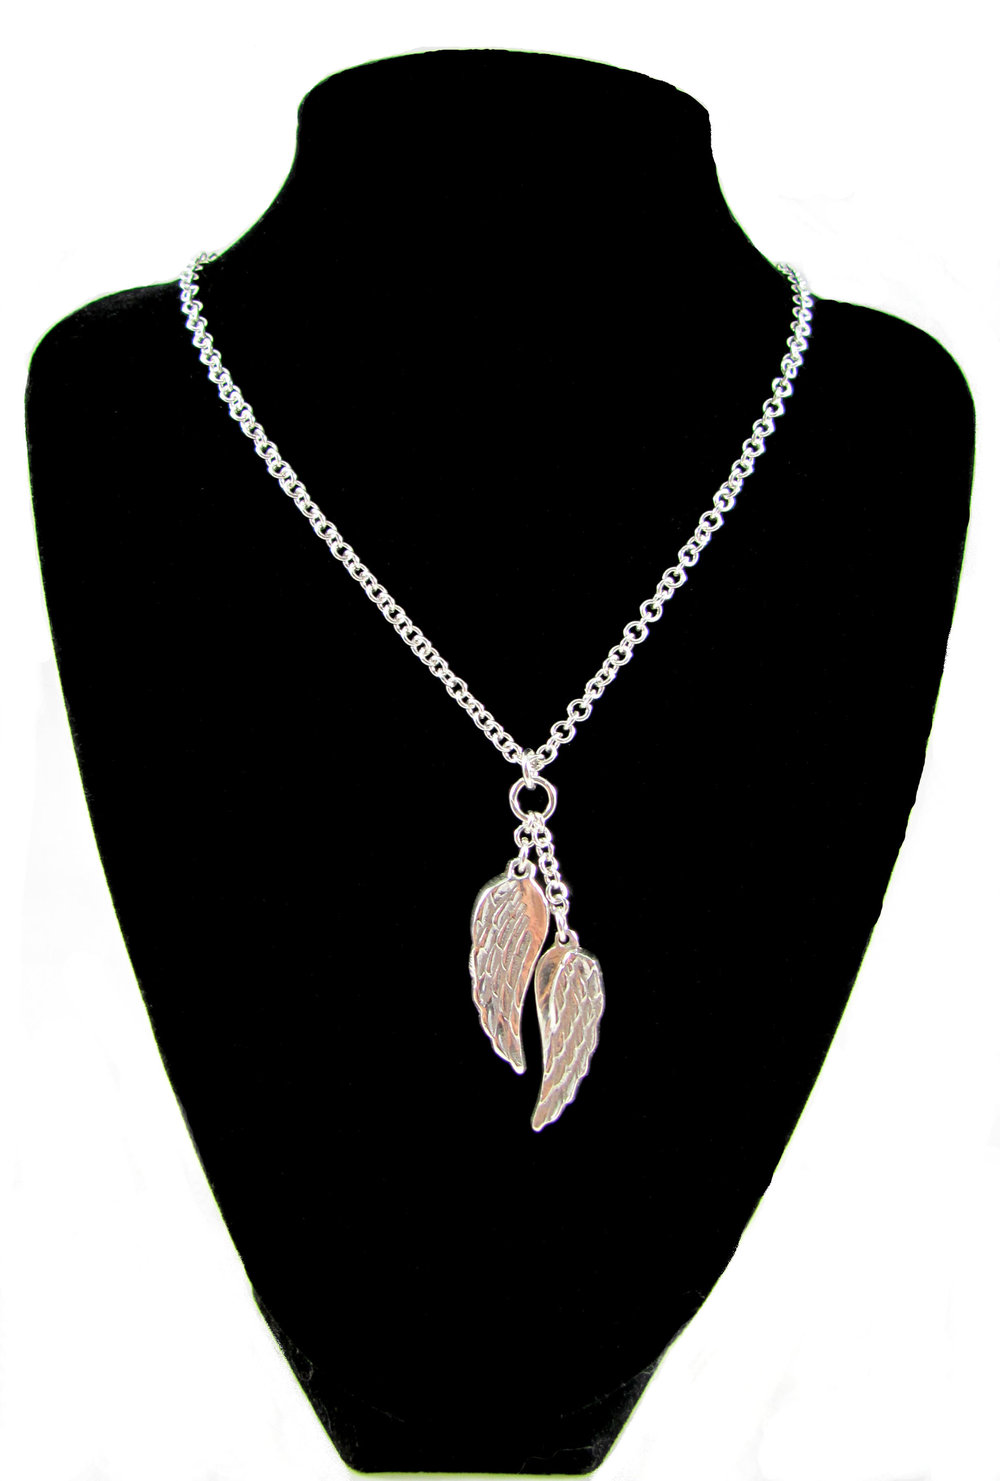 NECKLACE25.jpg